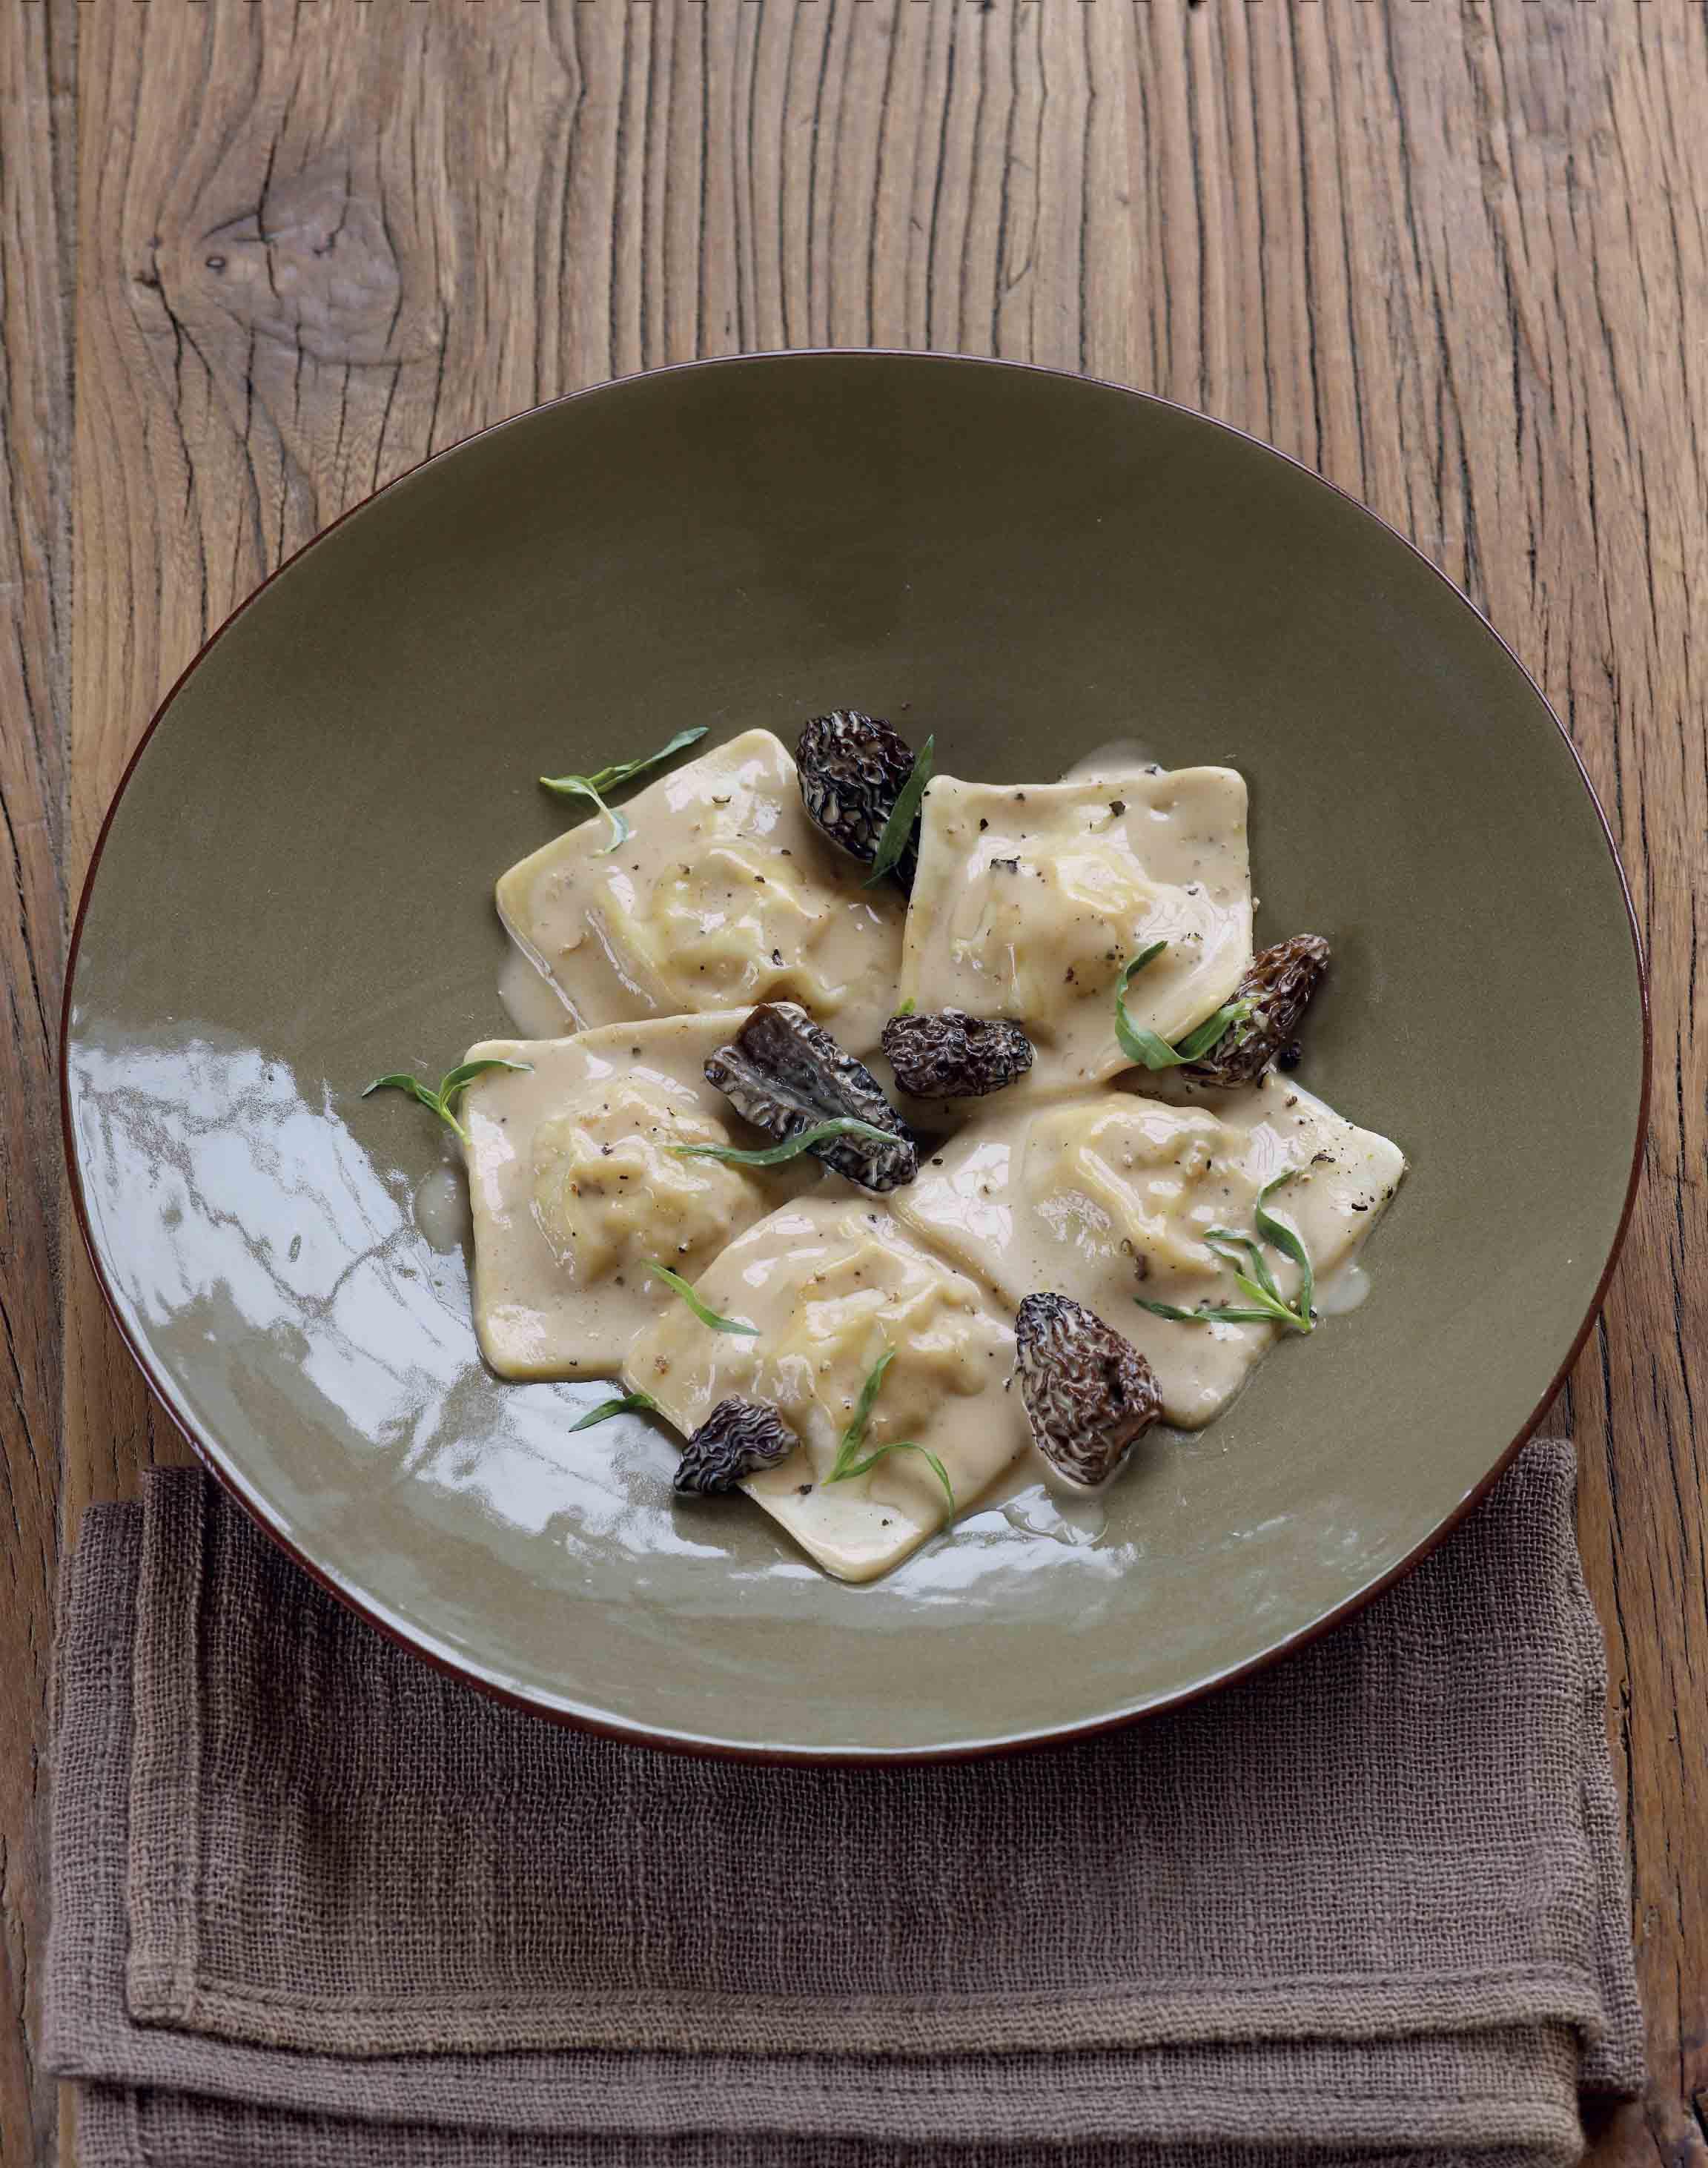 Chicken and wild mushroom ravioli with morels